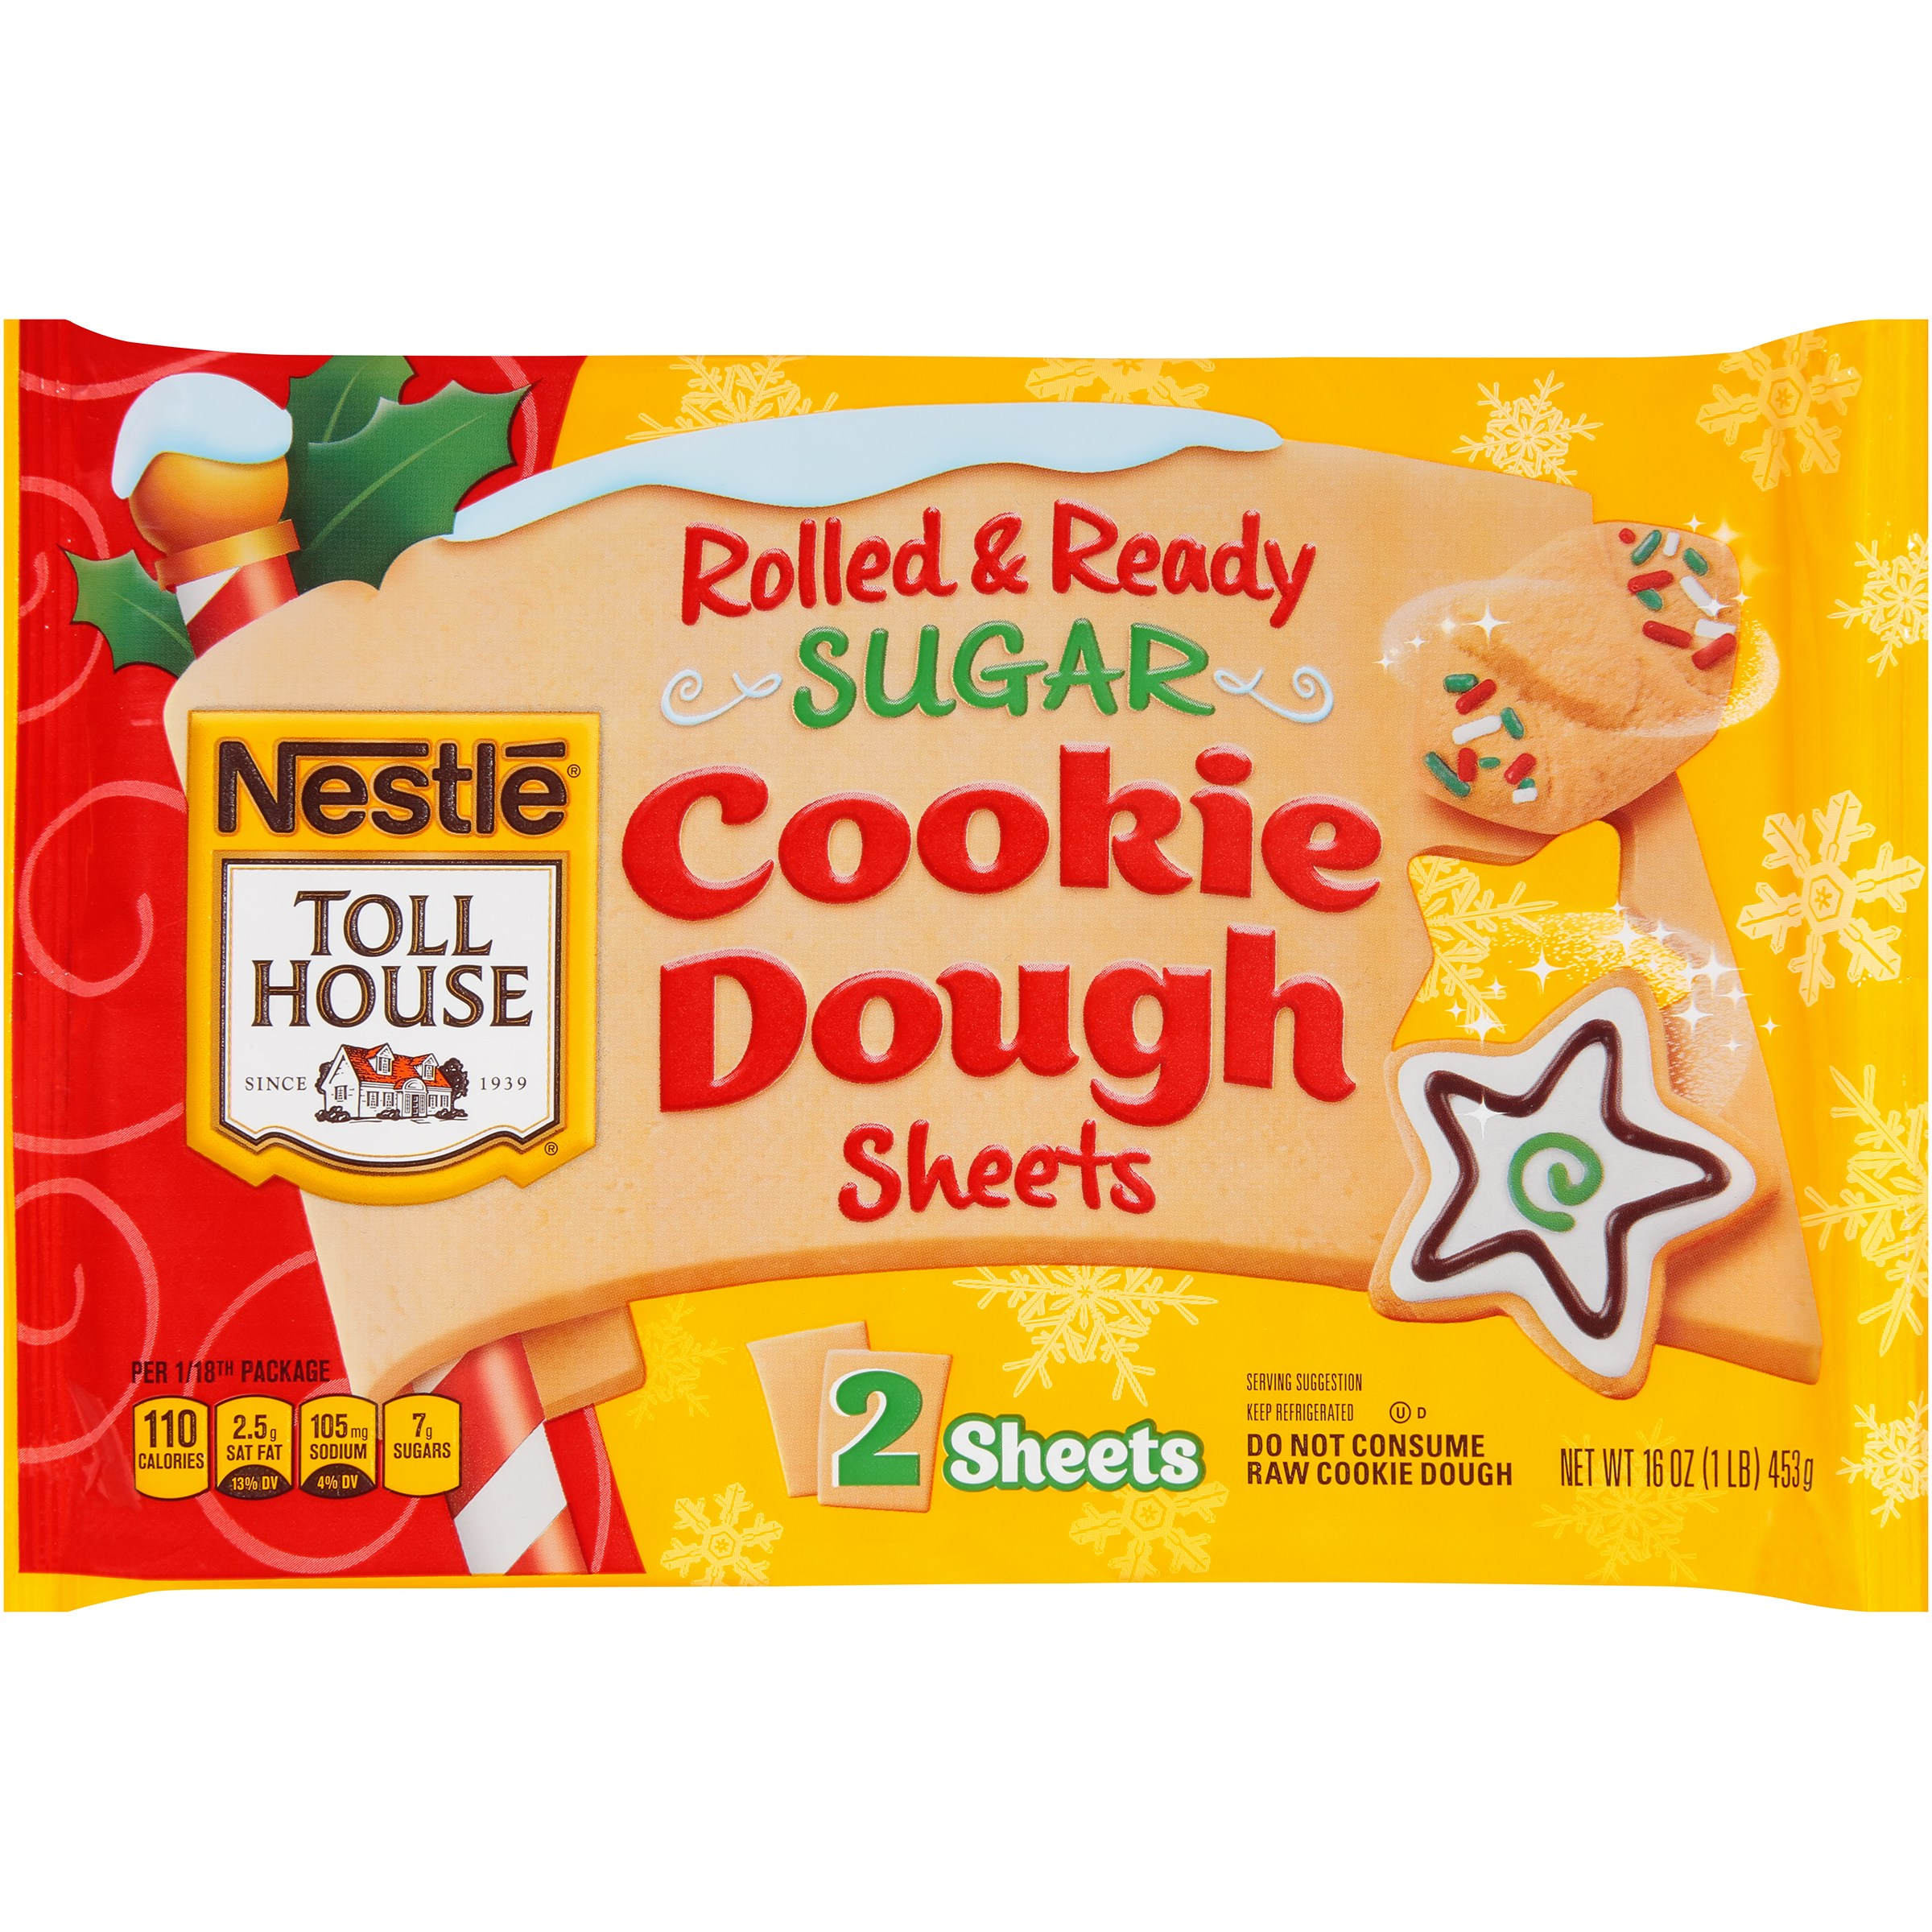 Nestlé TOLL HOUSE Holiday Sugar Sheets Cookie Dough 16 oz. Sheet